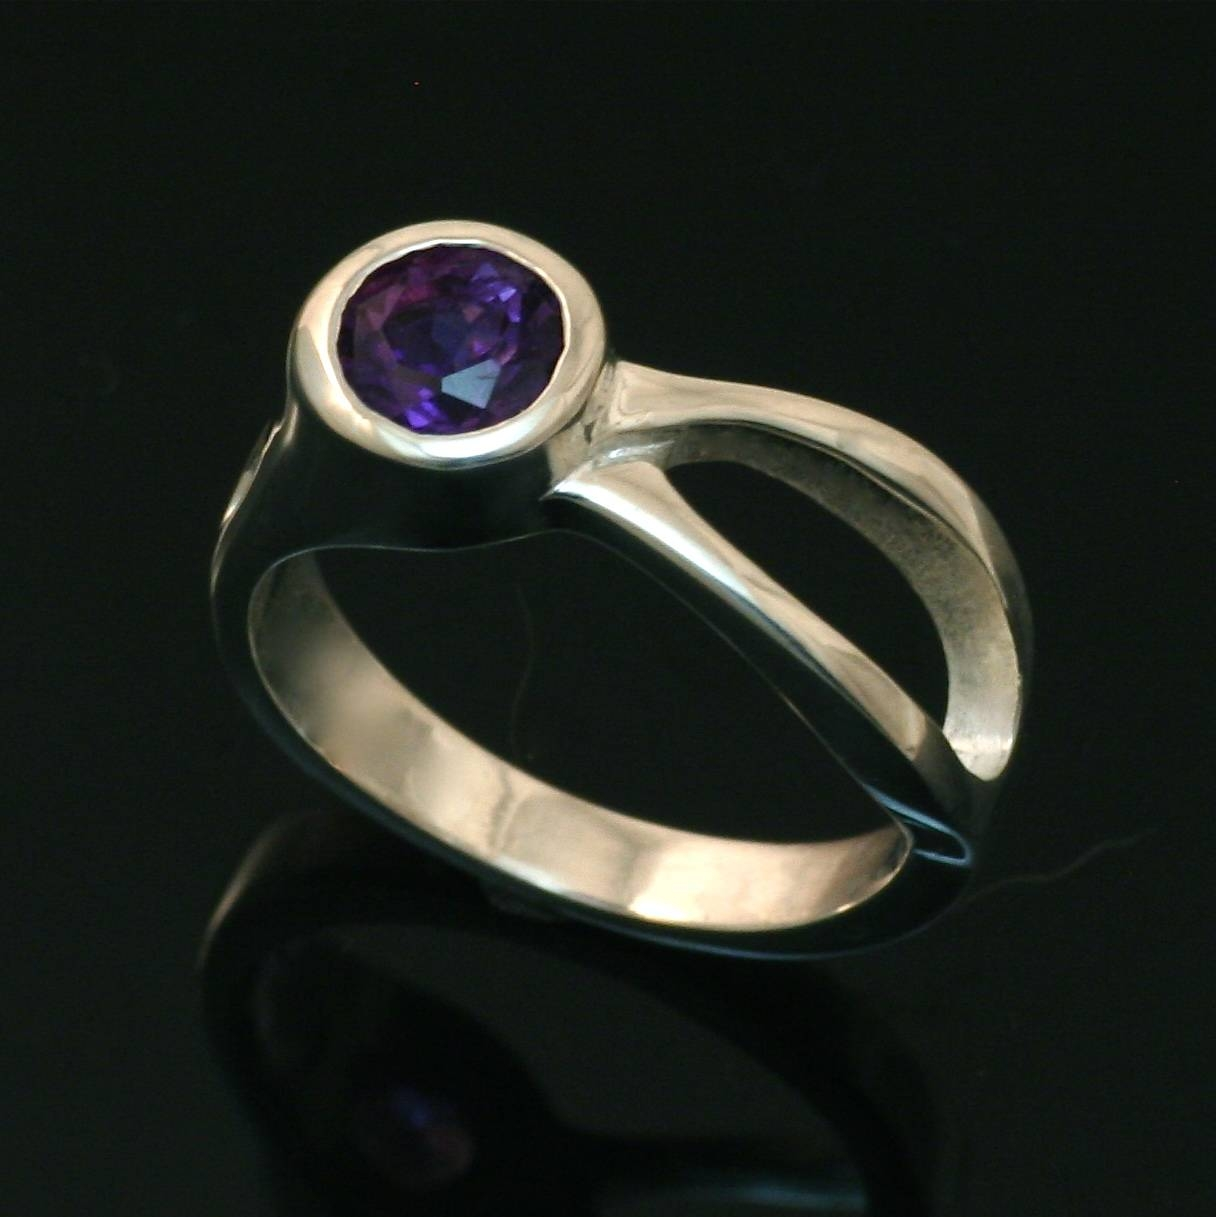 Two Rivers Ring Engagement Rings, Gemstone Rings, Diamond Rings Regarding New Age Engagement Rings (View 11 of 15)